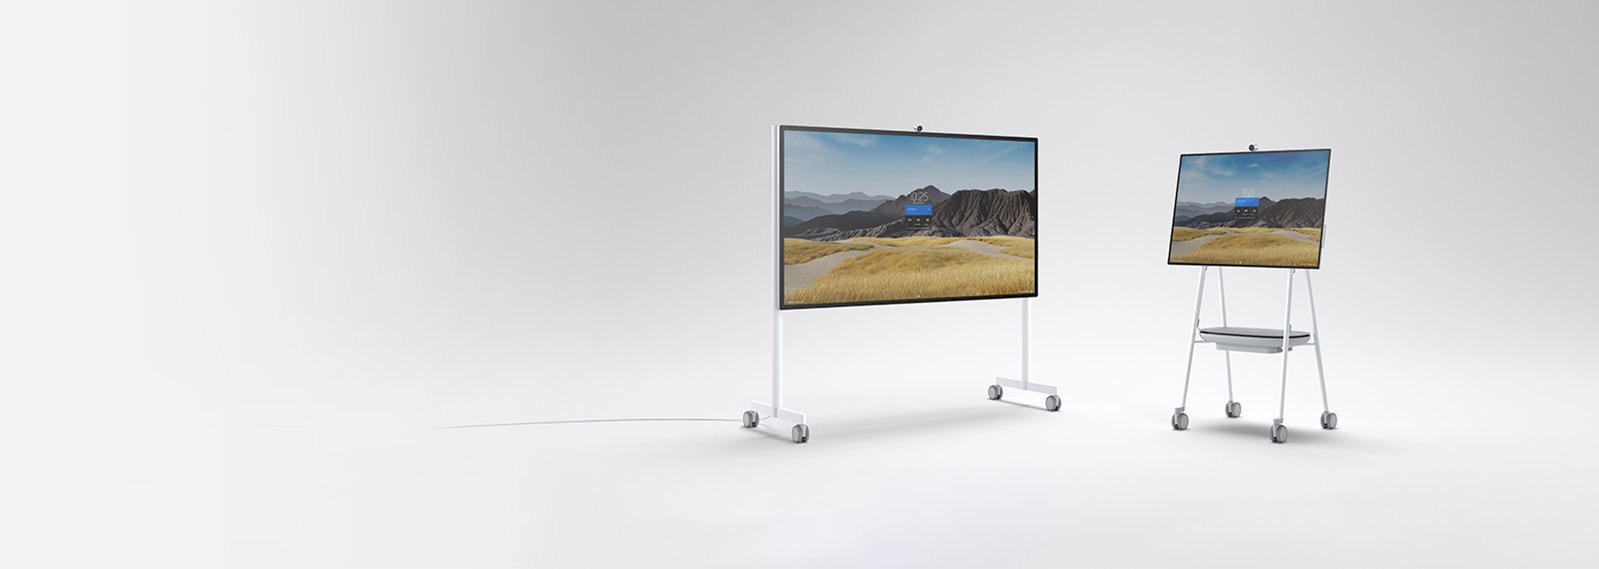 Hub 2S 85-inch and 50-inch sizes side-by-side